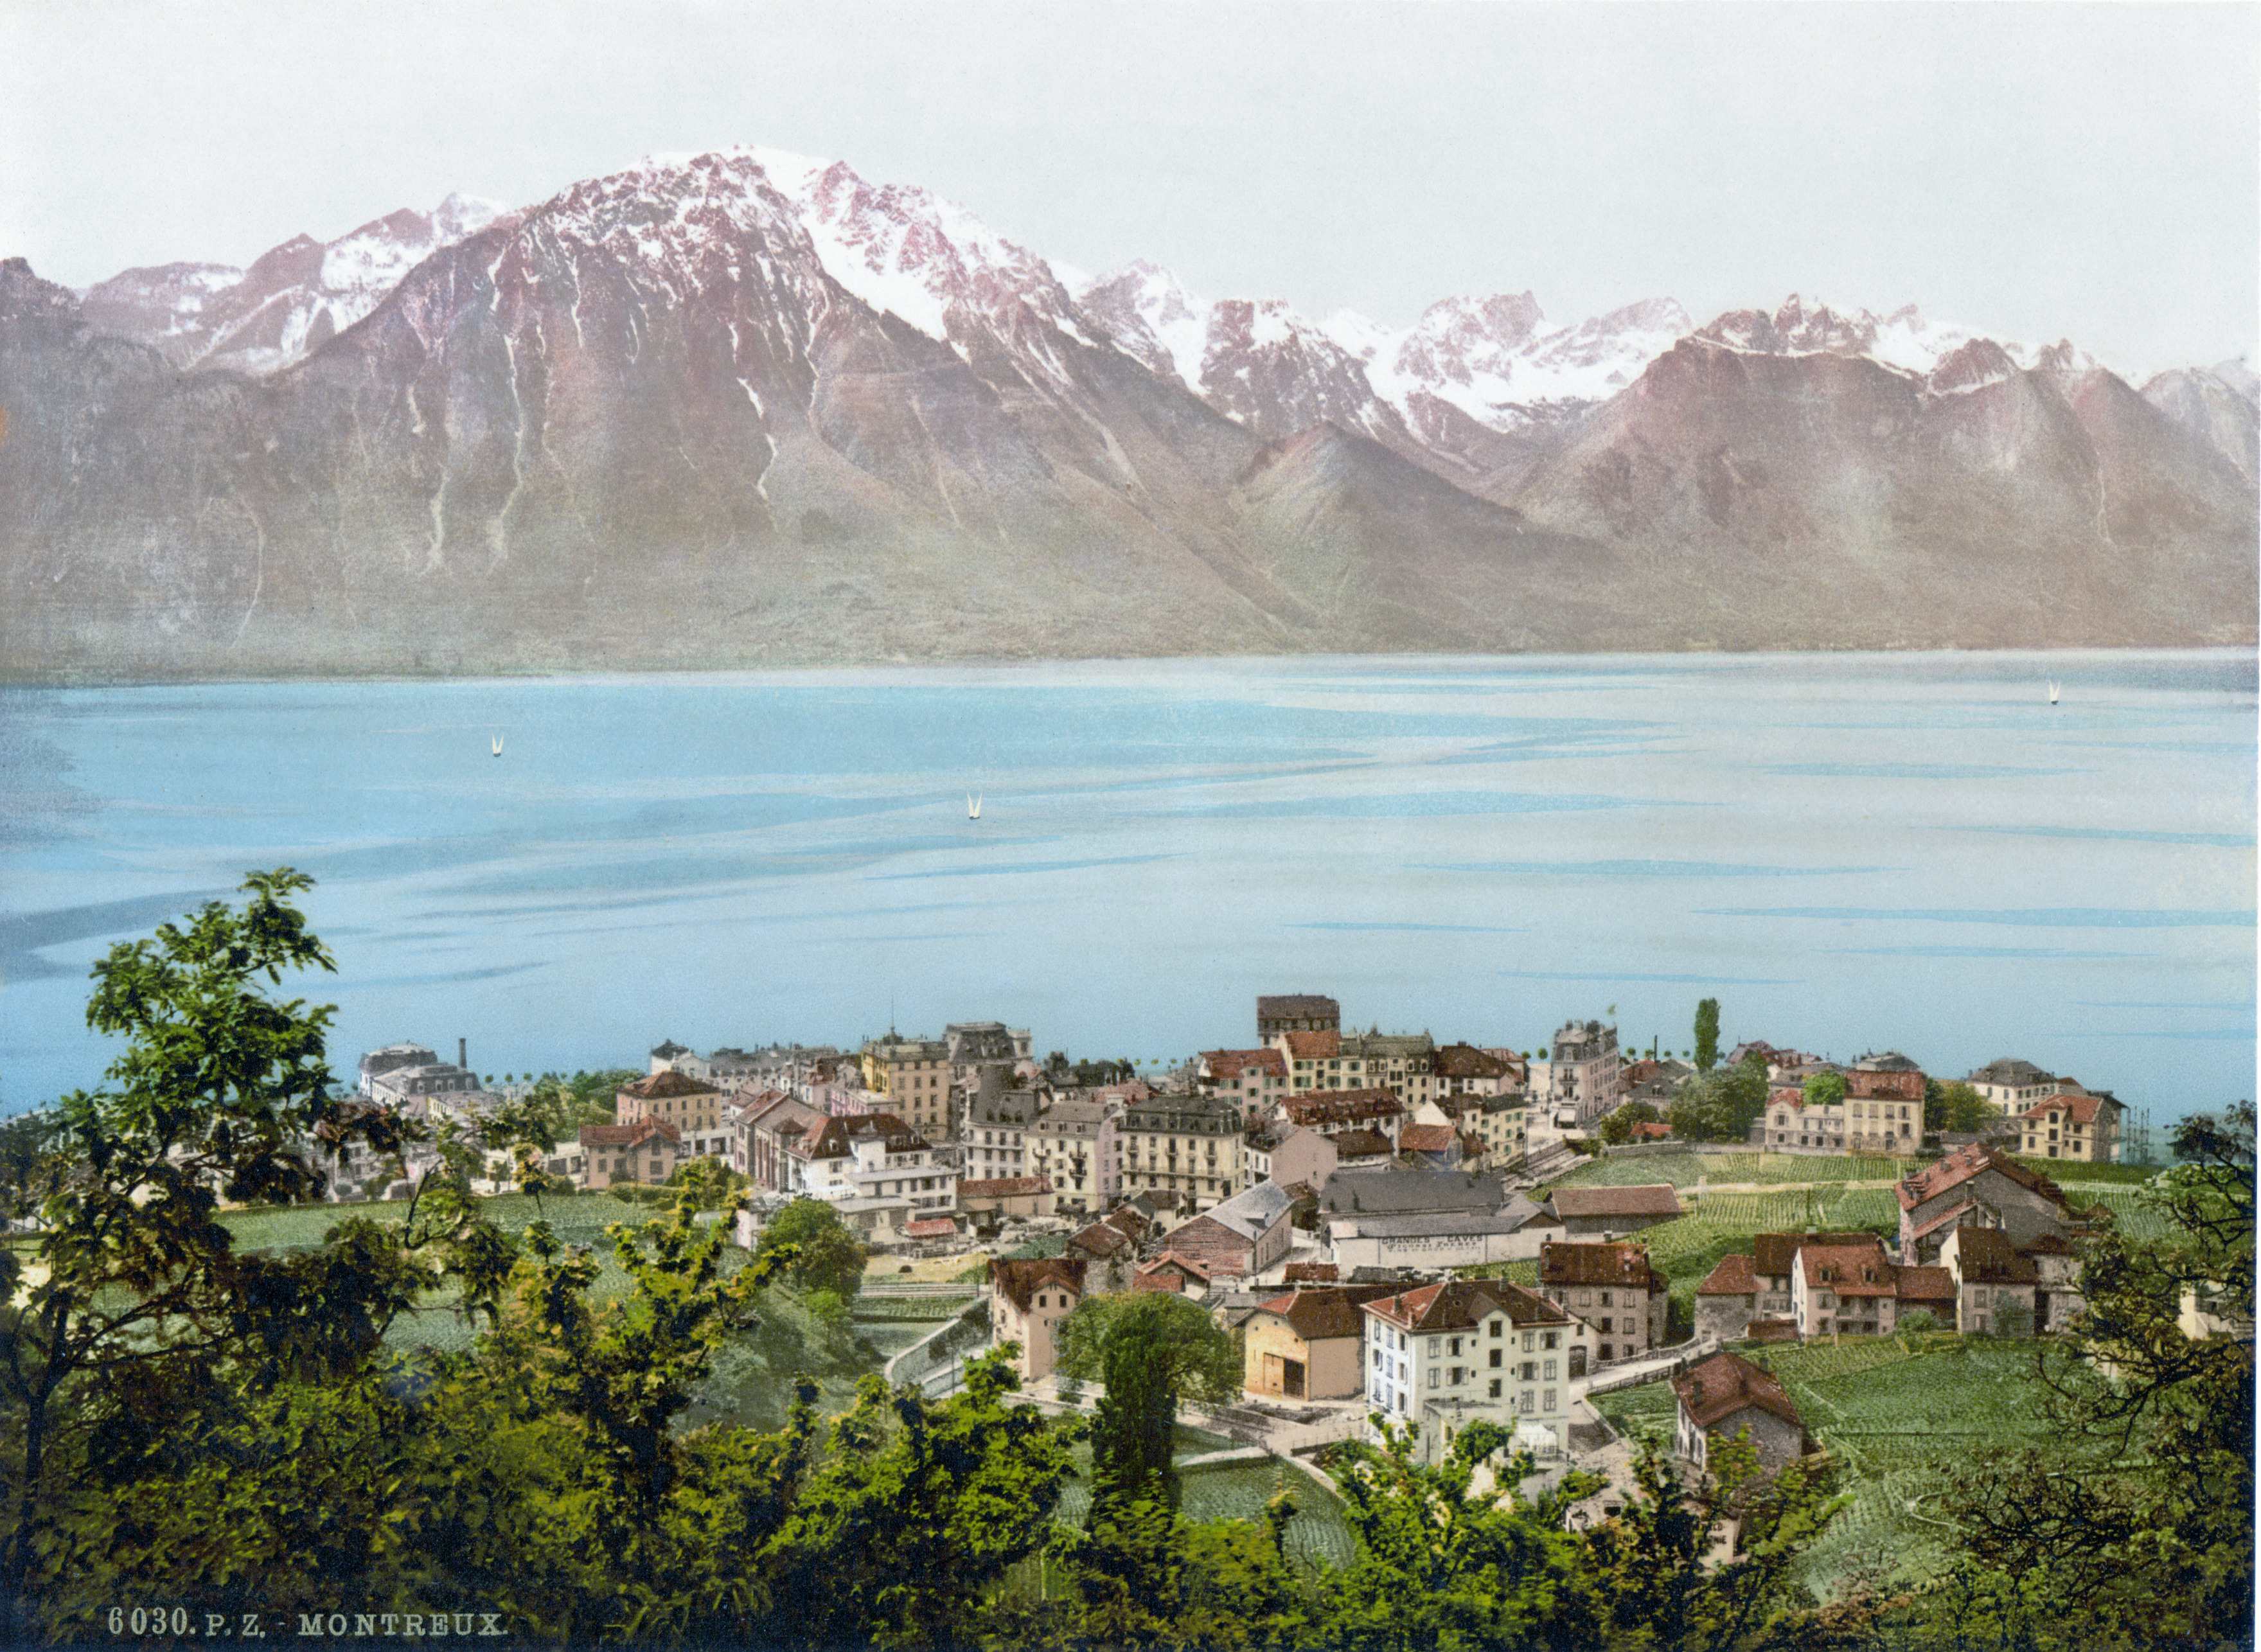 File:Montreux 2 um 1900.jpg - Wikimedia Commons